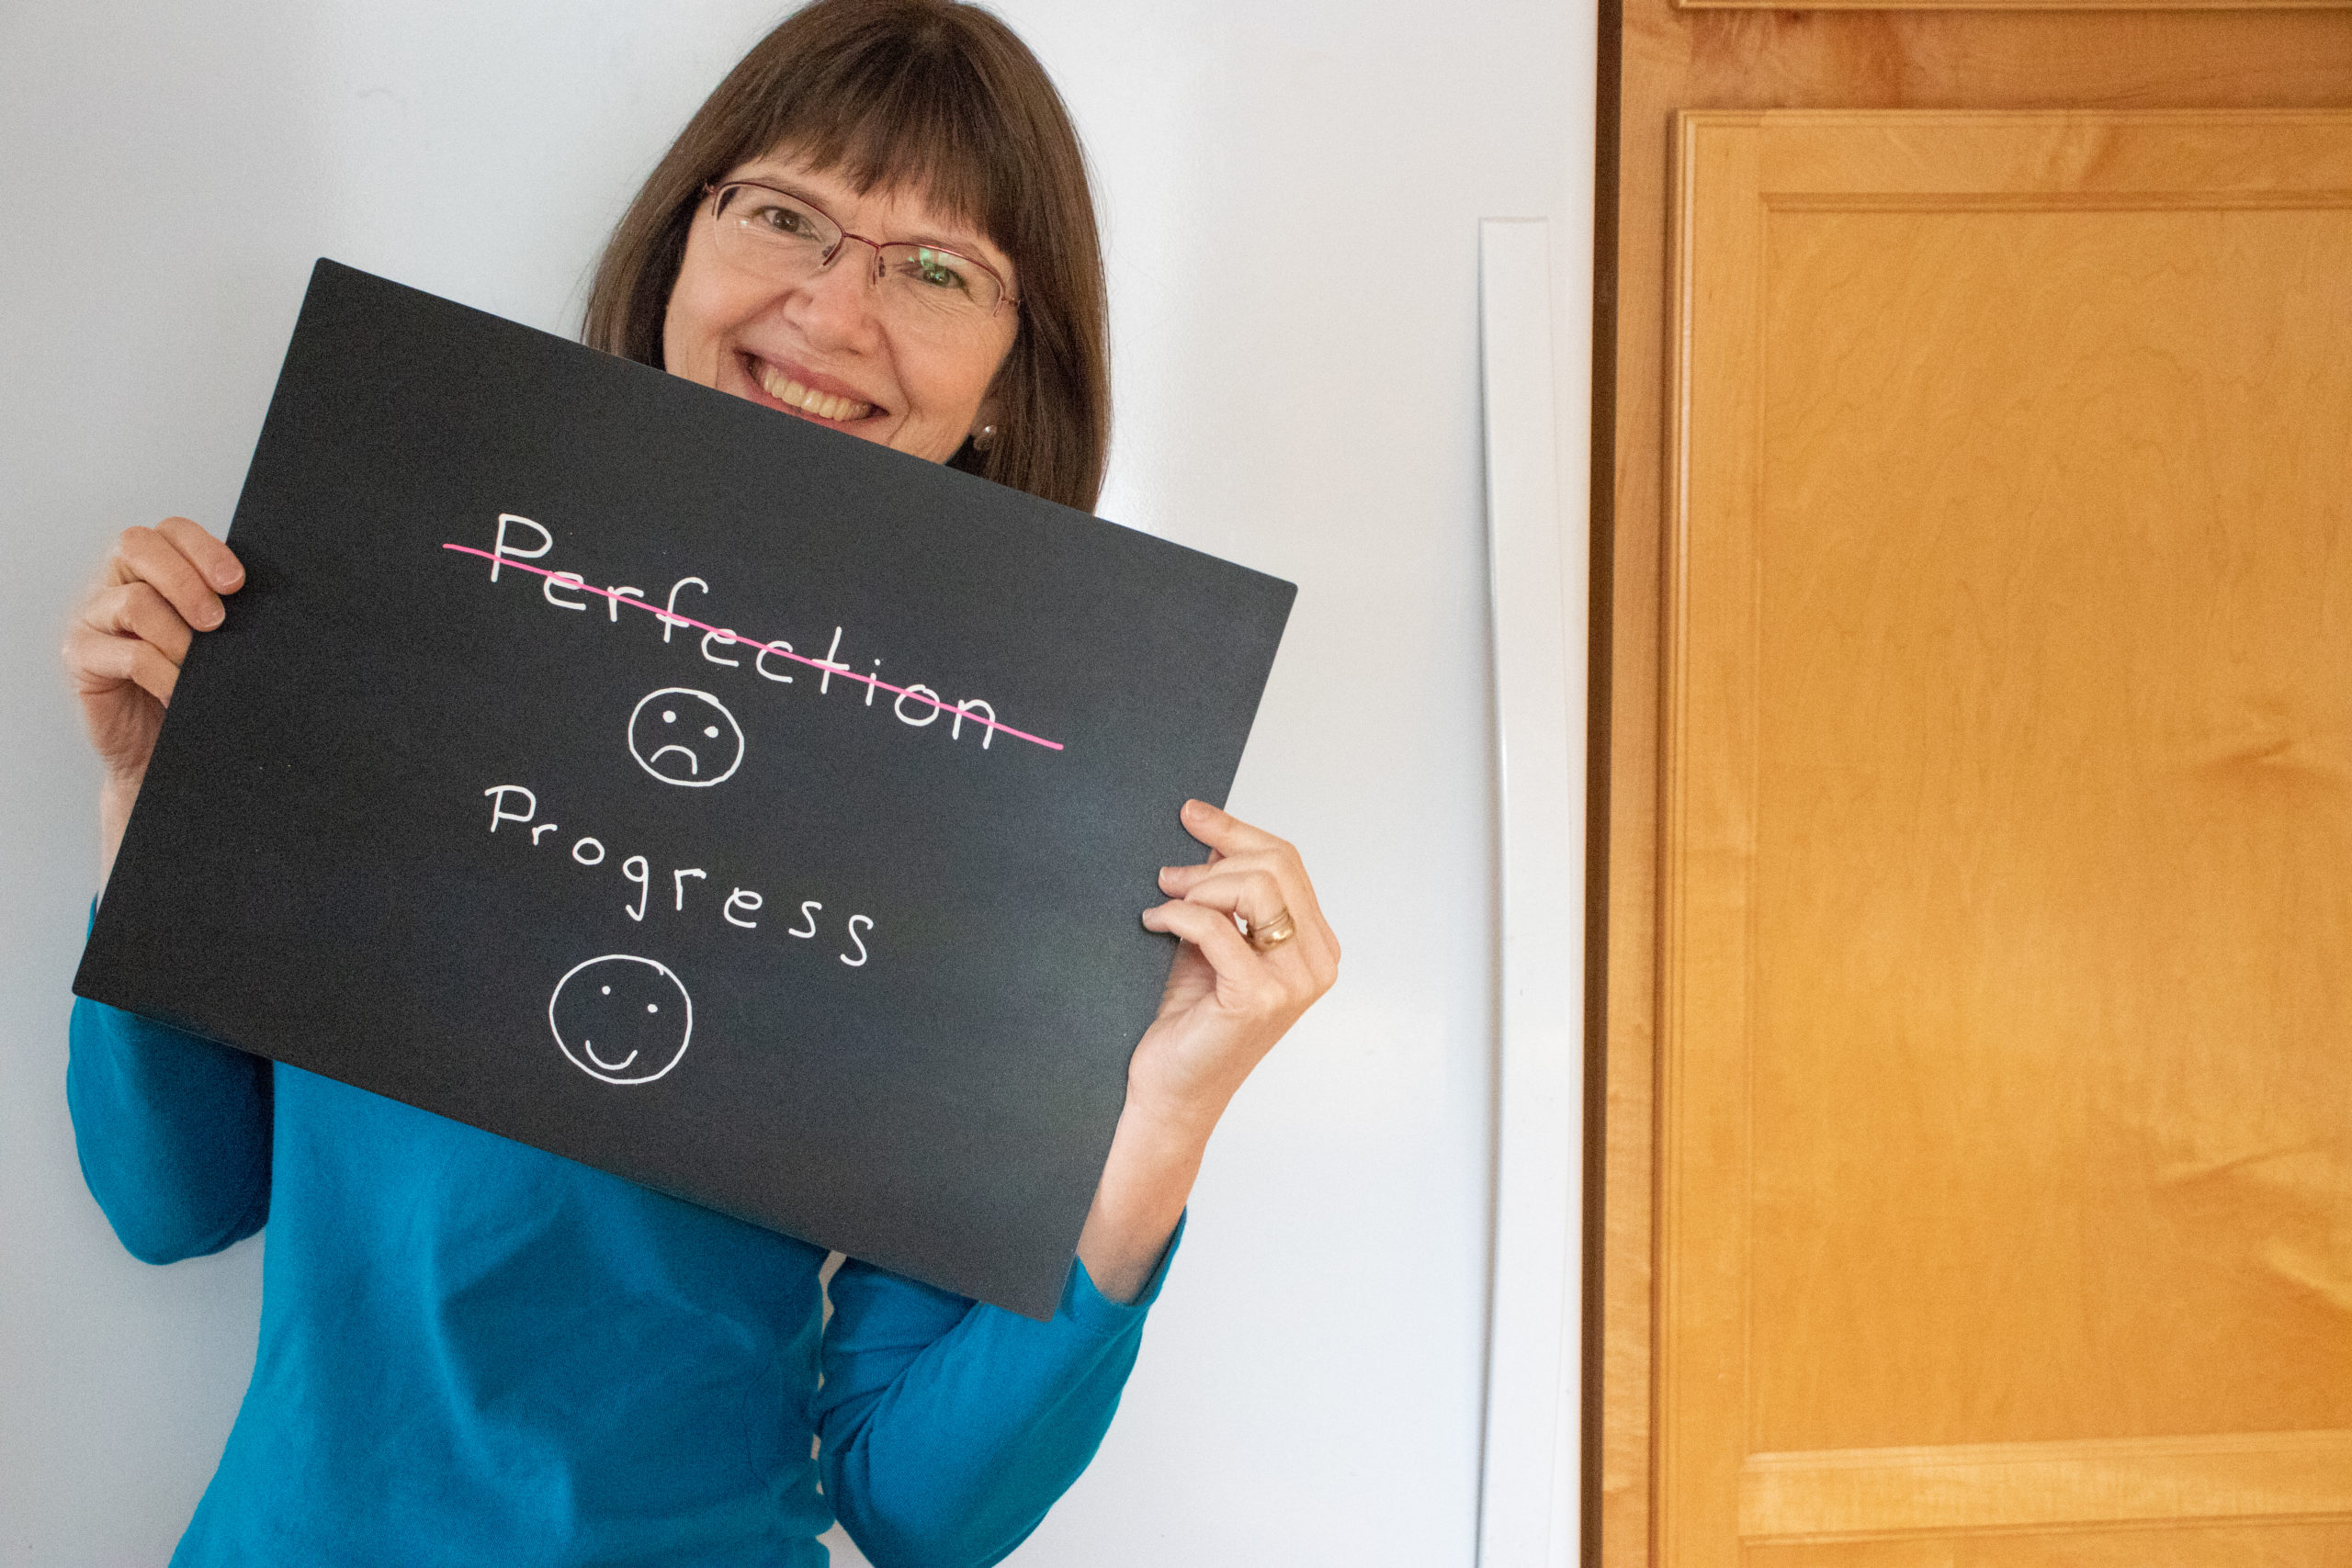 self-sabotage not is focusing on perfection instead of porgress